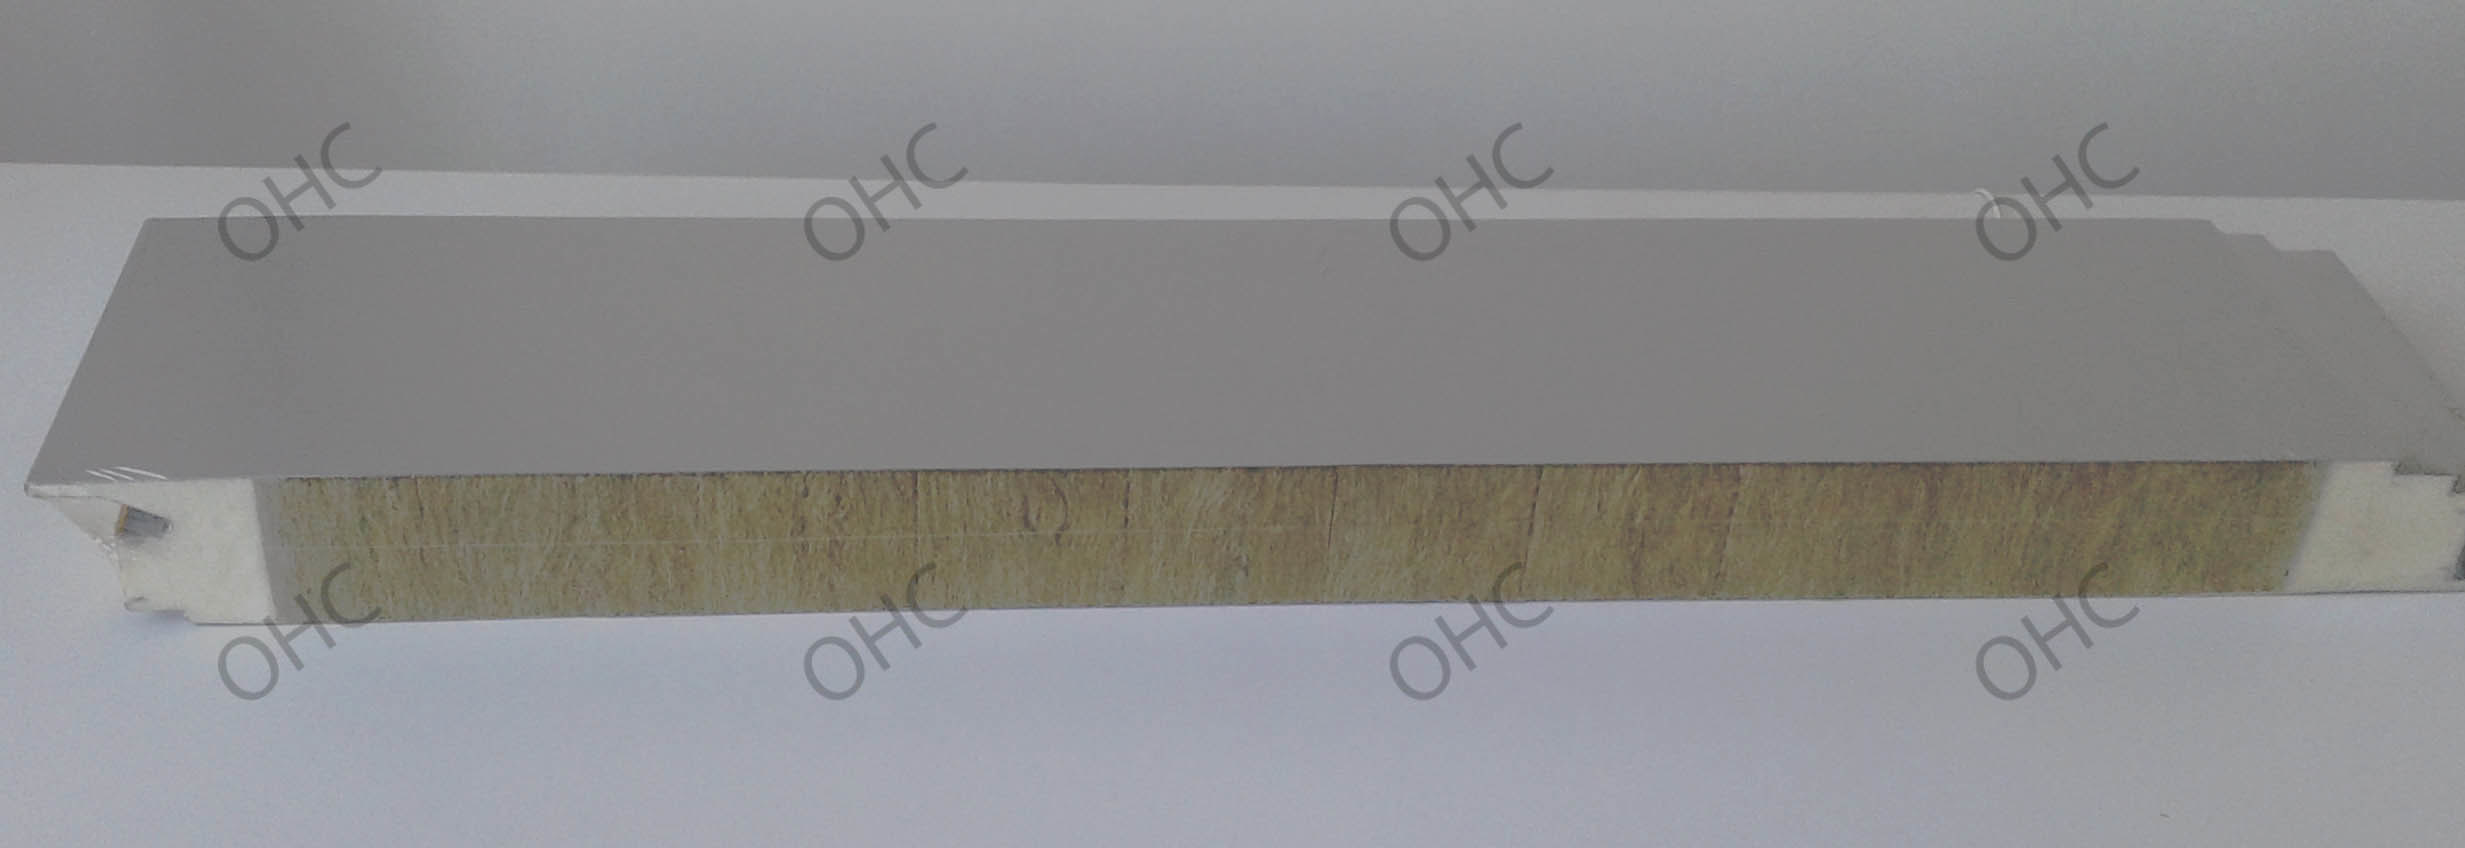 Fireproof Rockwool Sandwich Panel for Roof and Wall